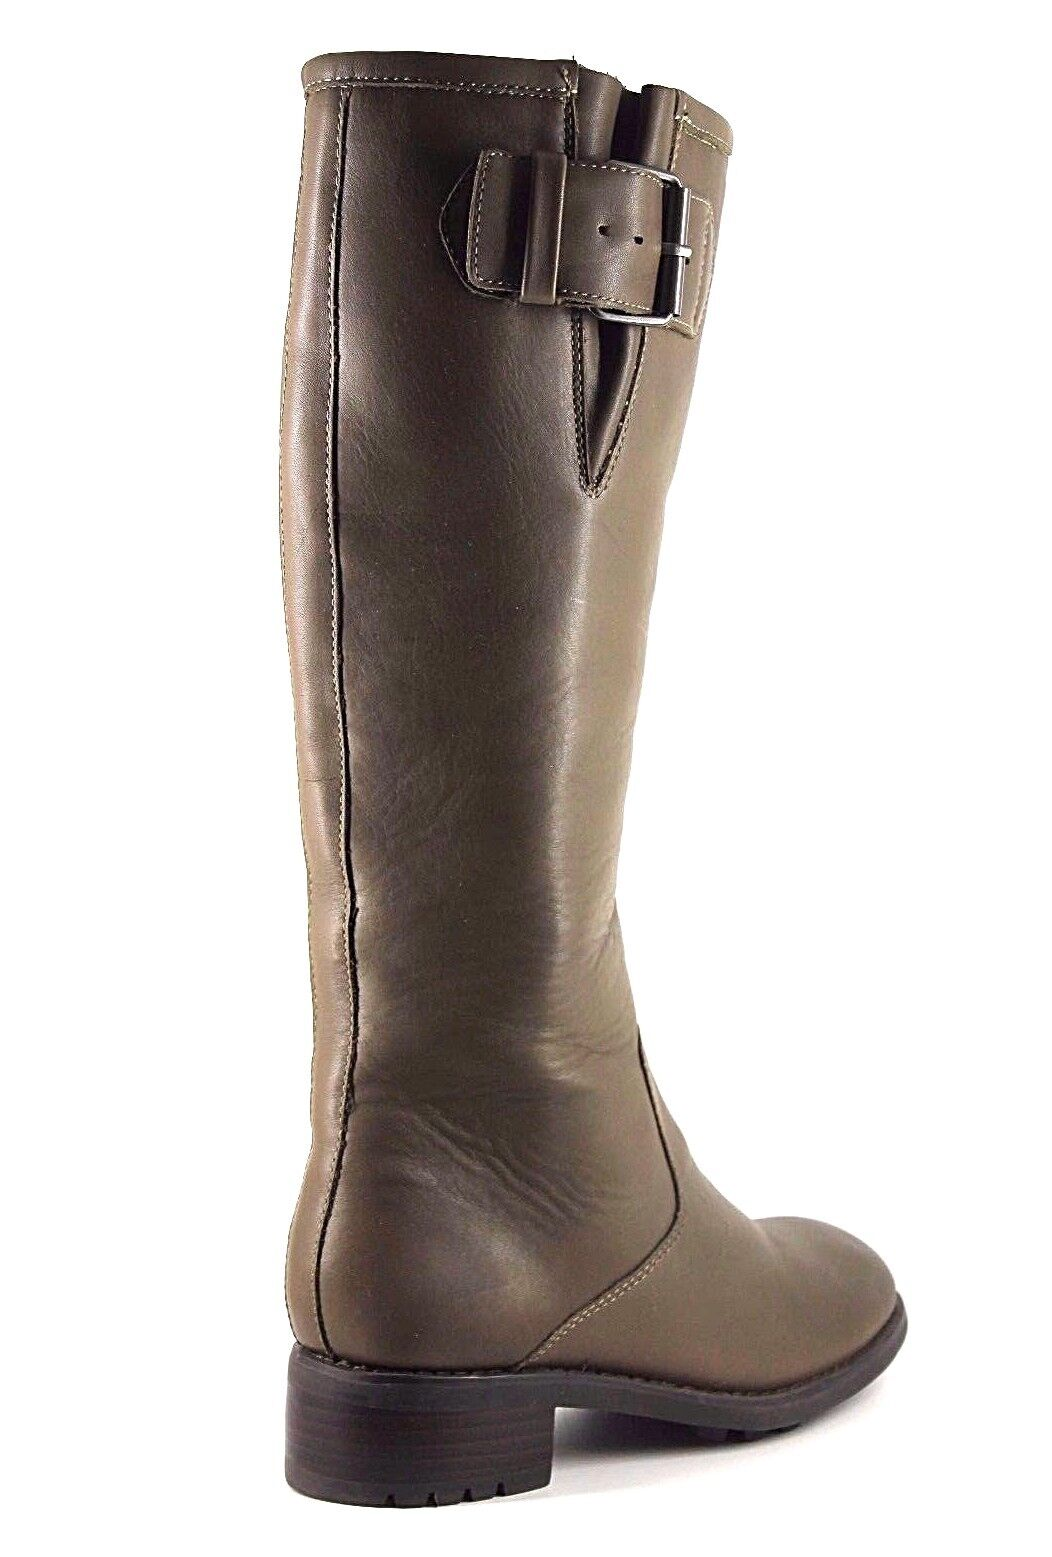 Boden Womens UK 5 EU 38 Khaki Leather Tall Knee High Block Heel New Boots